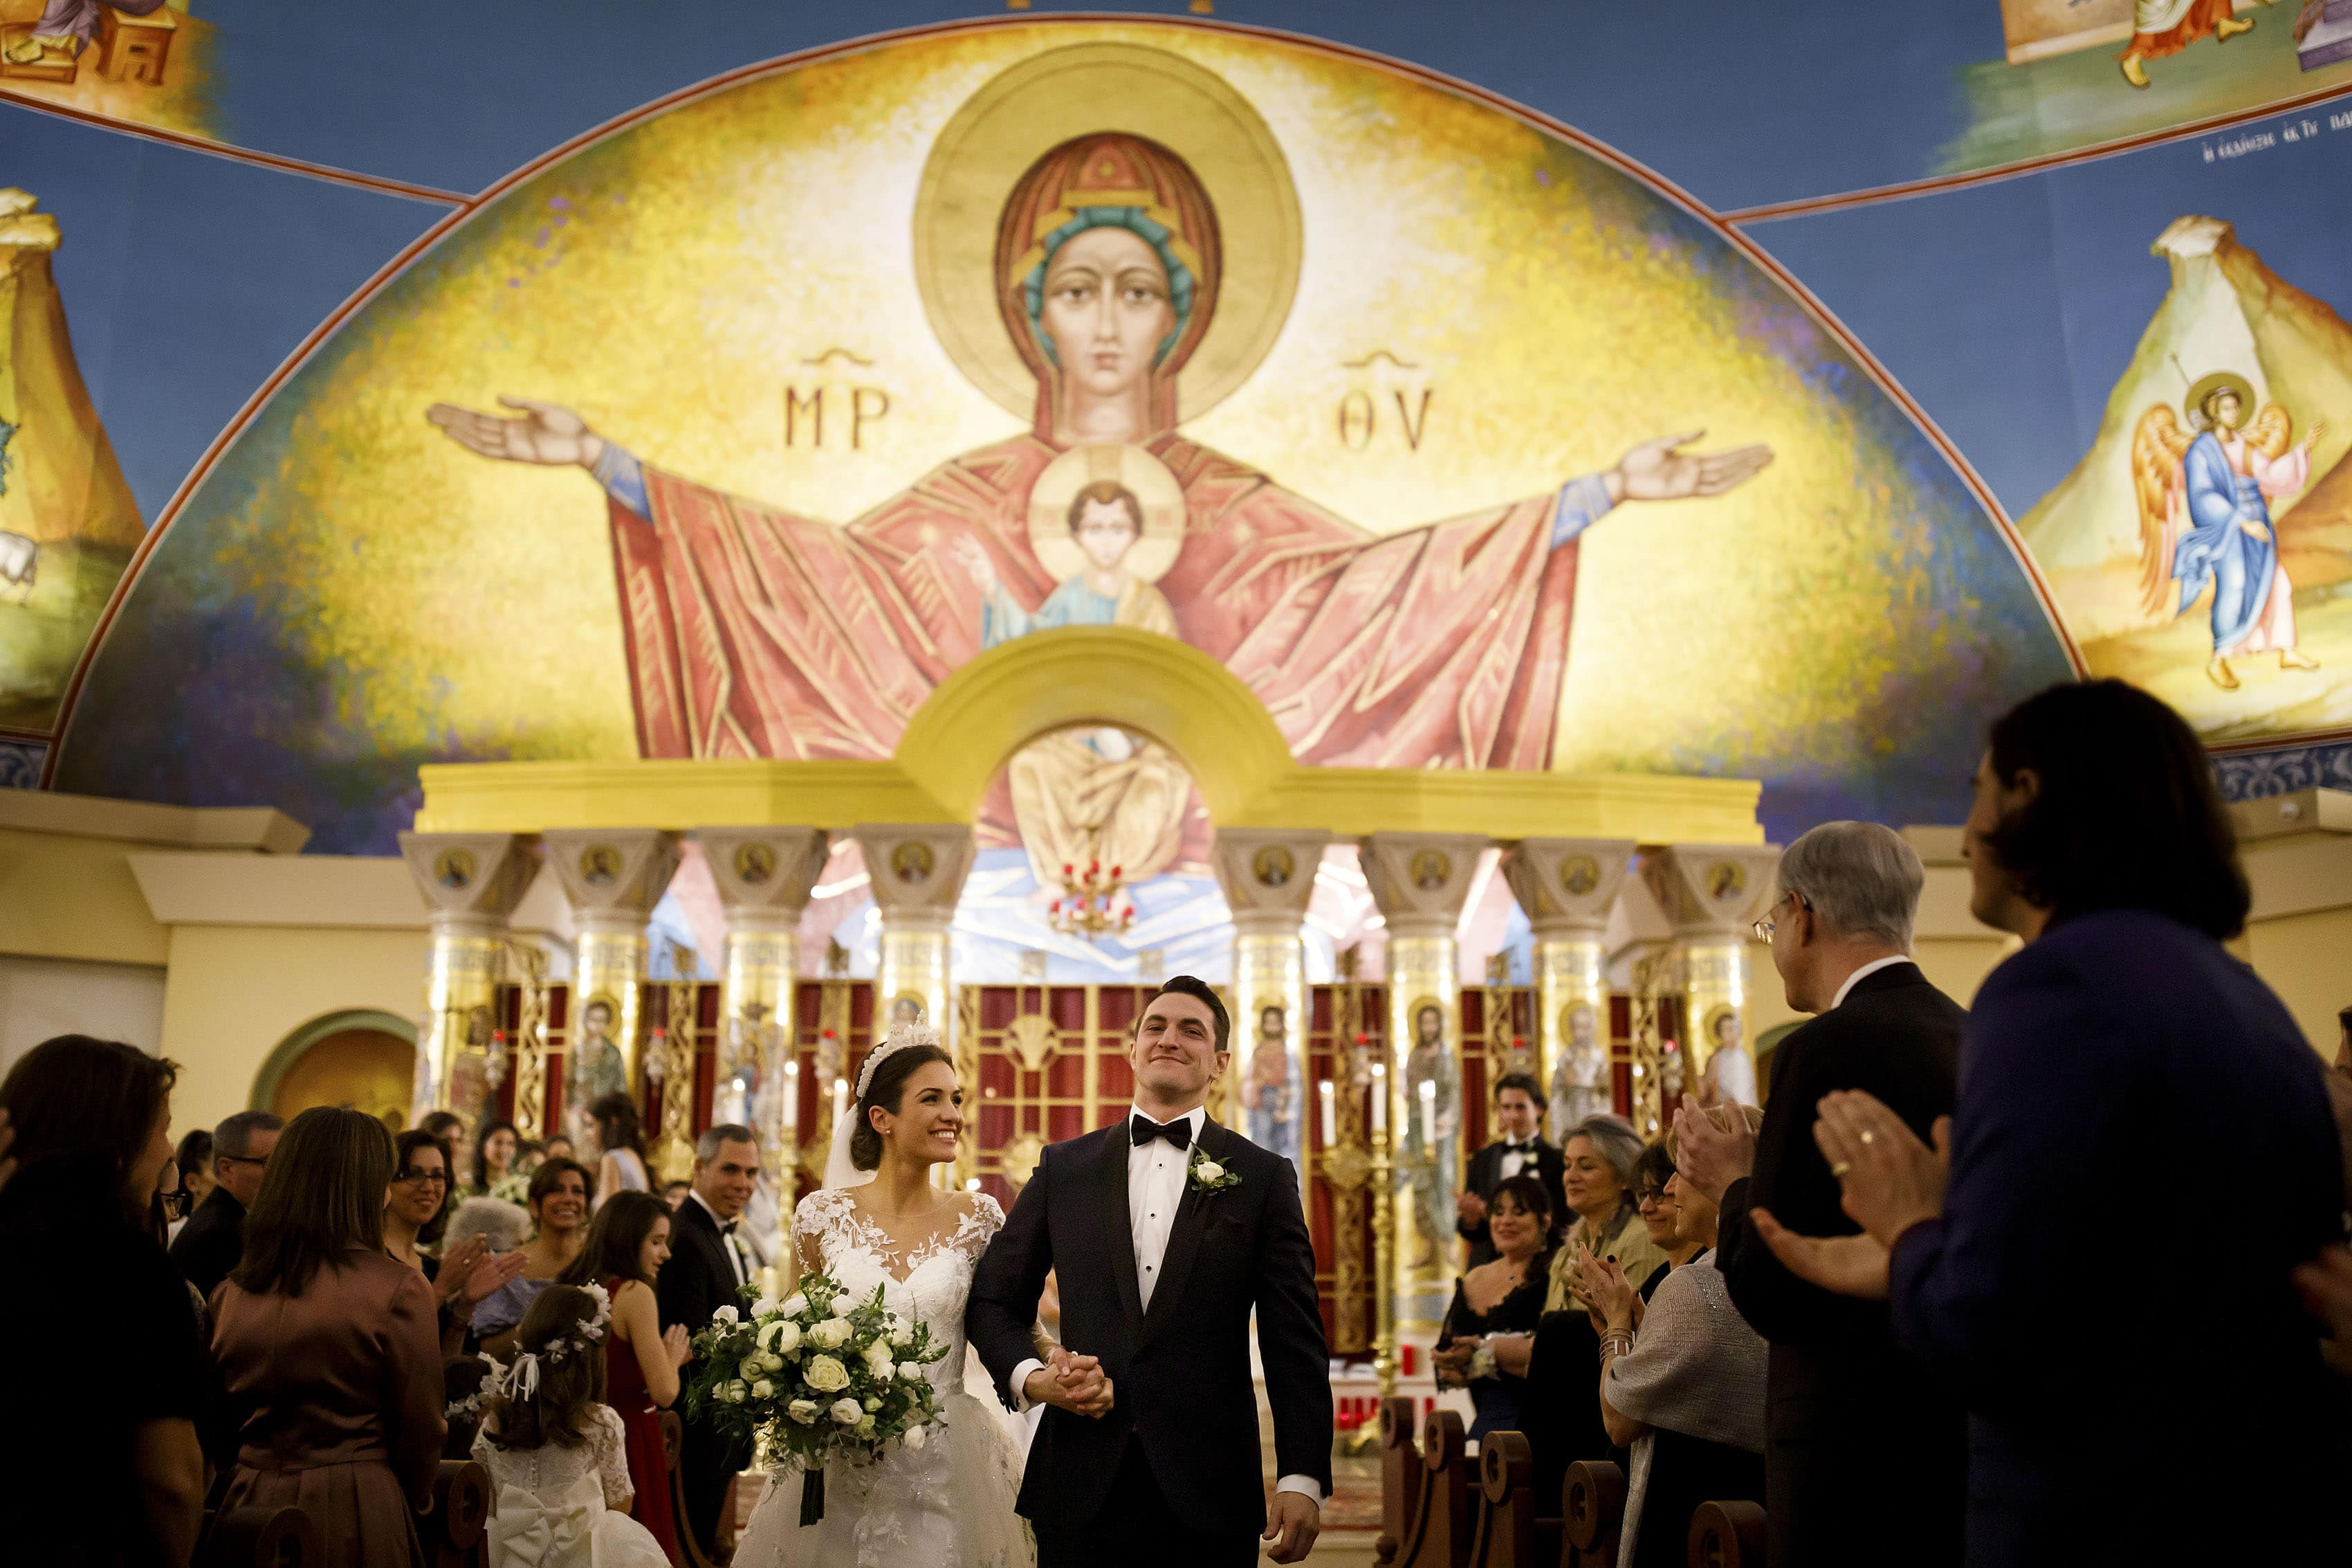 Ioanna and Alex walk down the aisle as a married couple following their colorful greek wedding in Denver at Assumption of the Theotokos Greek Orthodox Cathedral